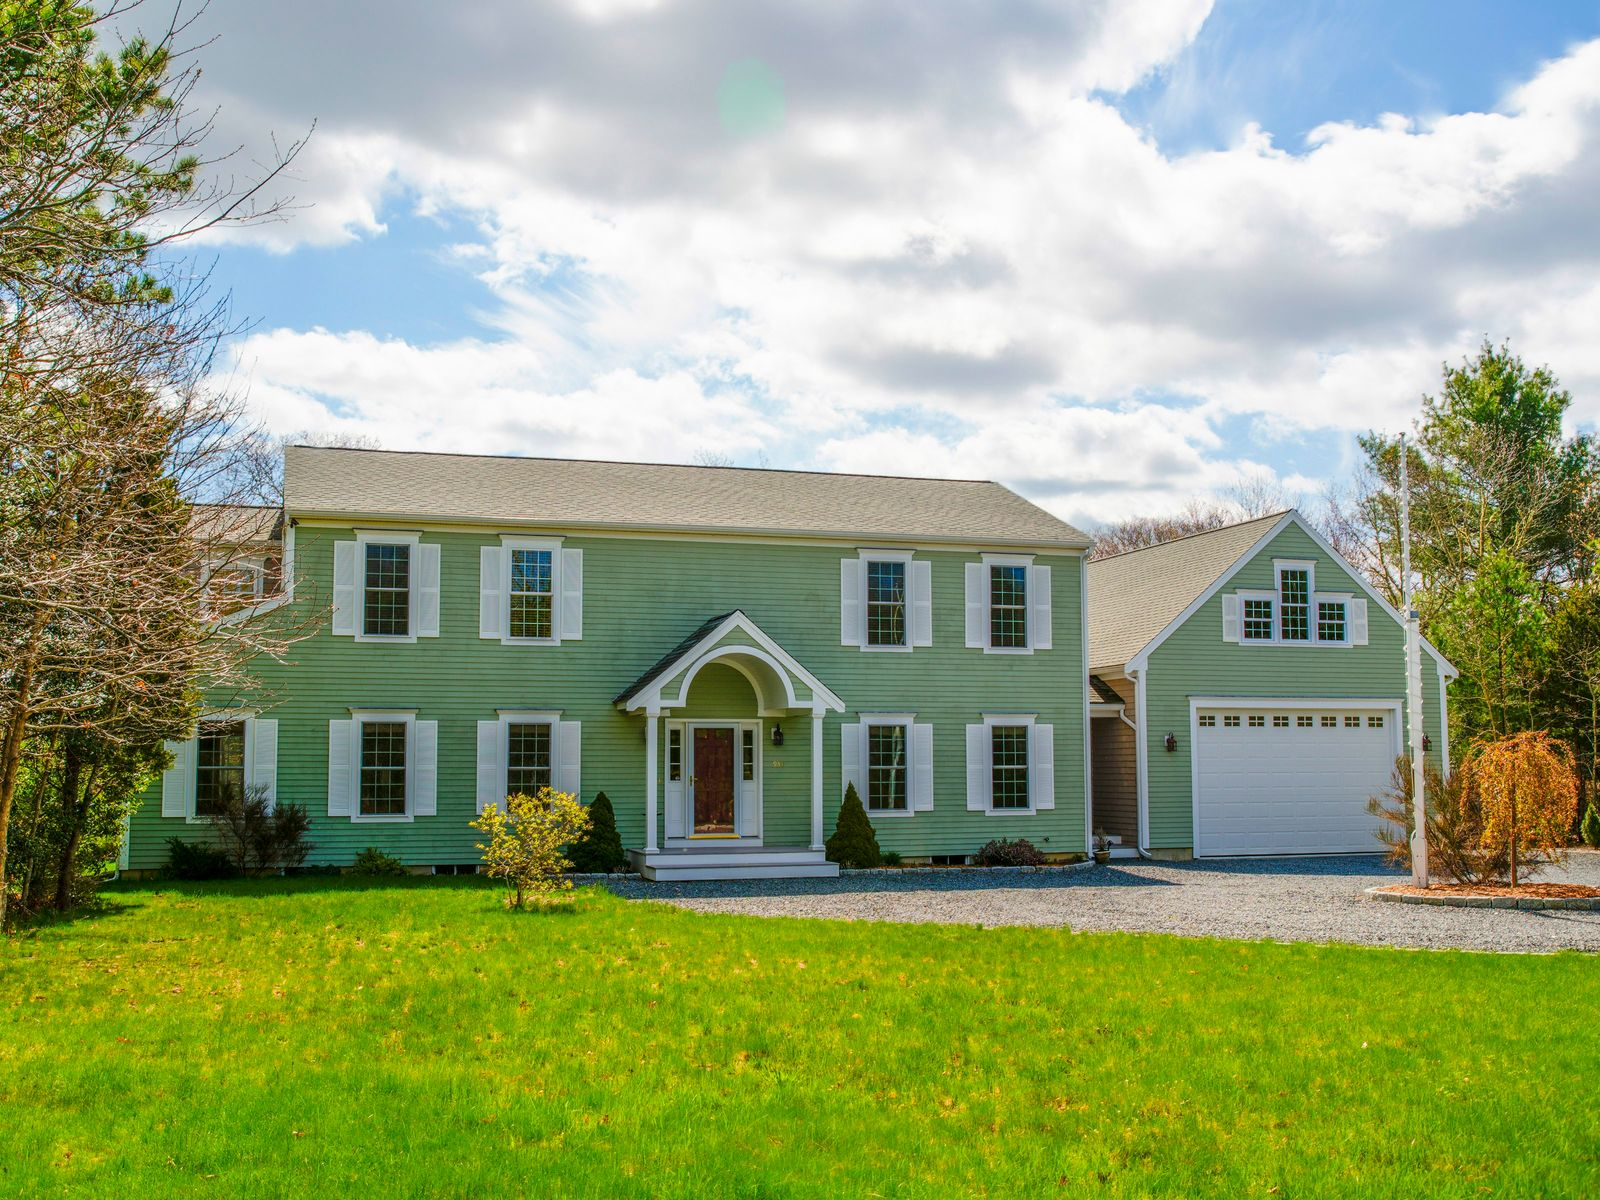 Pristine Waterfront Colonial, Marstons Mills MA Single Family Home - Cape Cod Real Estate